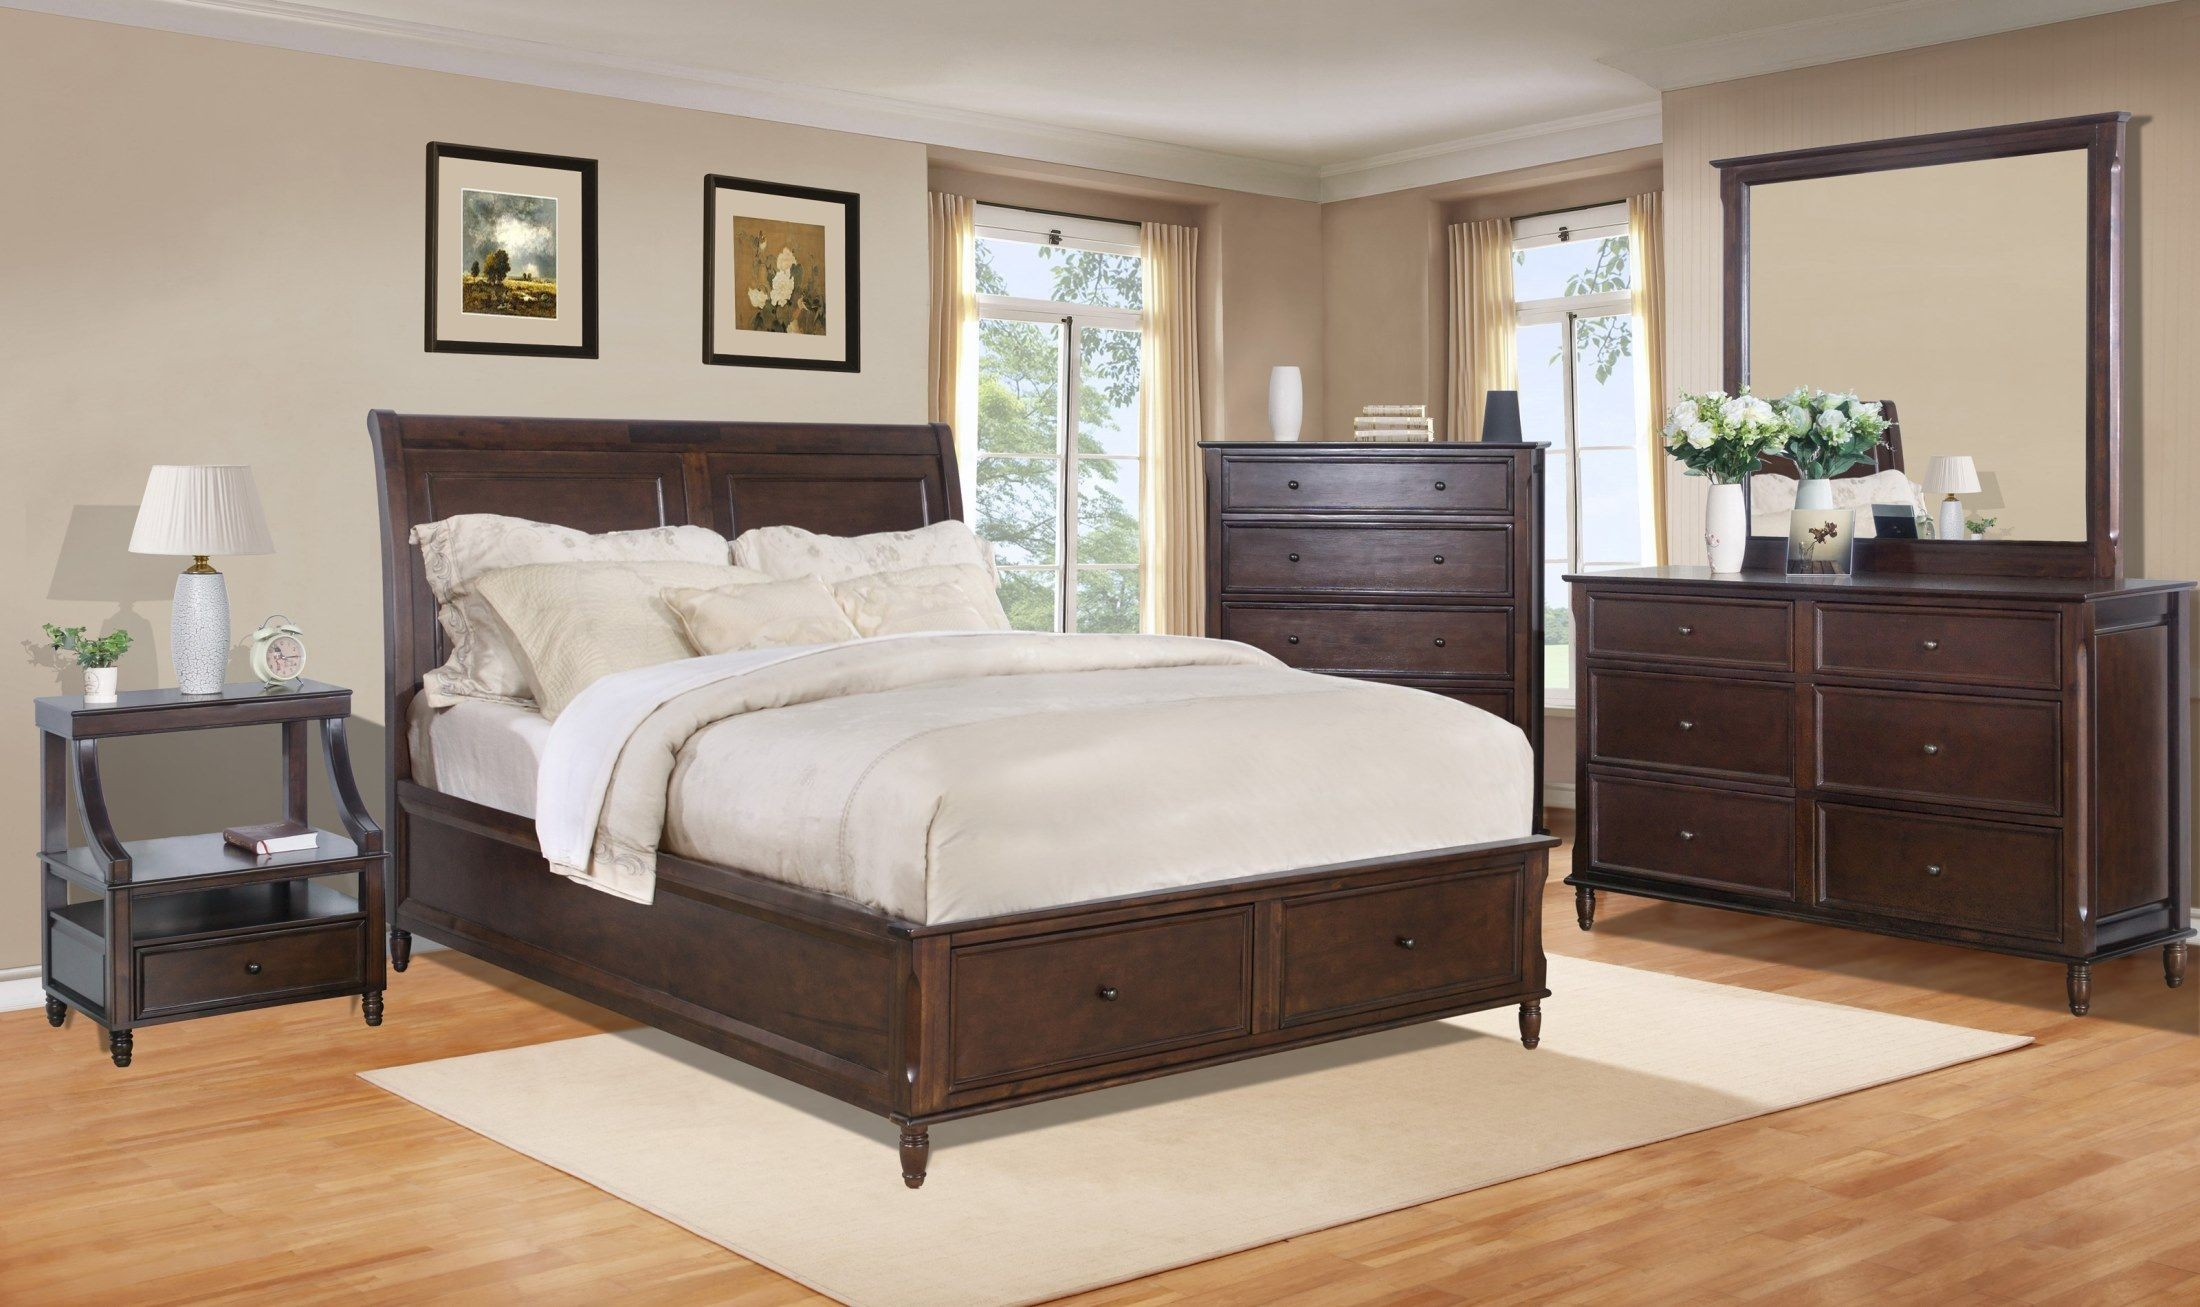 Avignon Bedroom Furniture Avignon Birch Cherry Storage Bedroom Set From Jofran  Coleman .